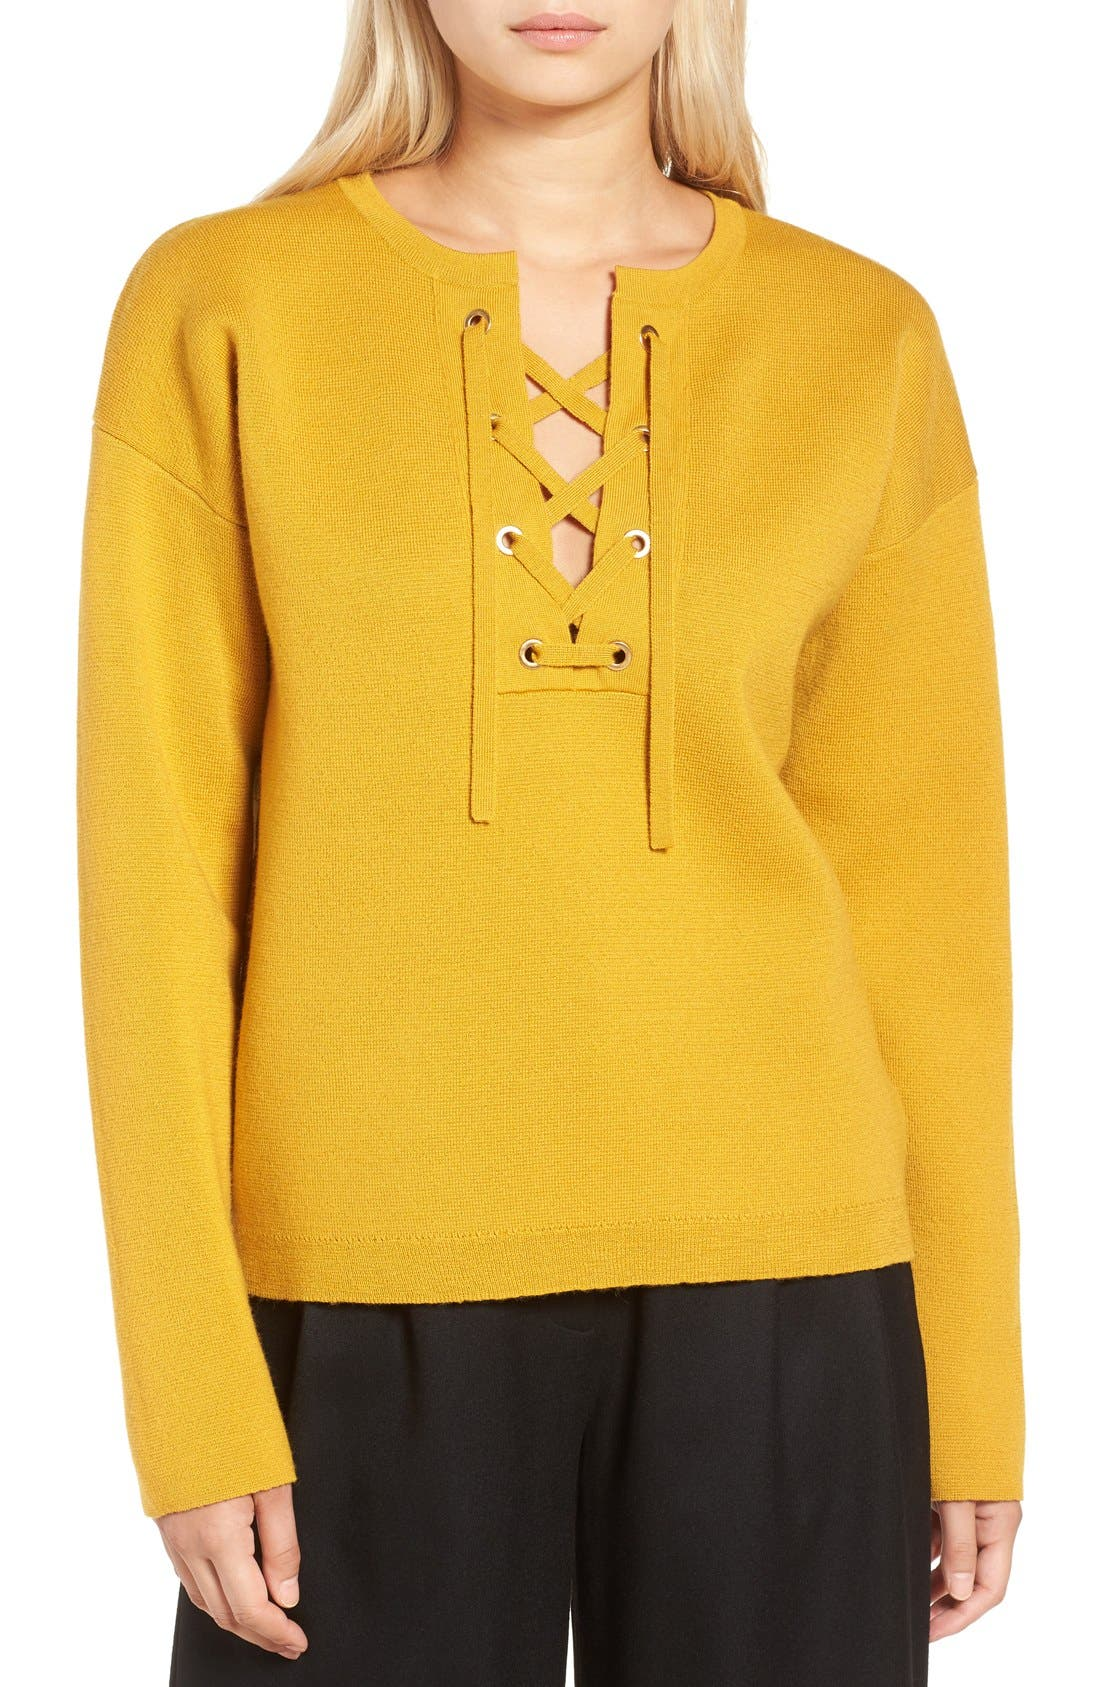 Alternate Image 1 Selected - J.Crew Collection Bonded Lace-Up Sweater